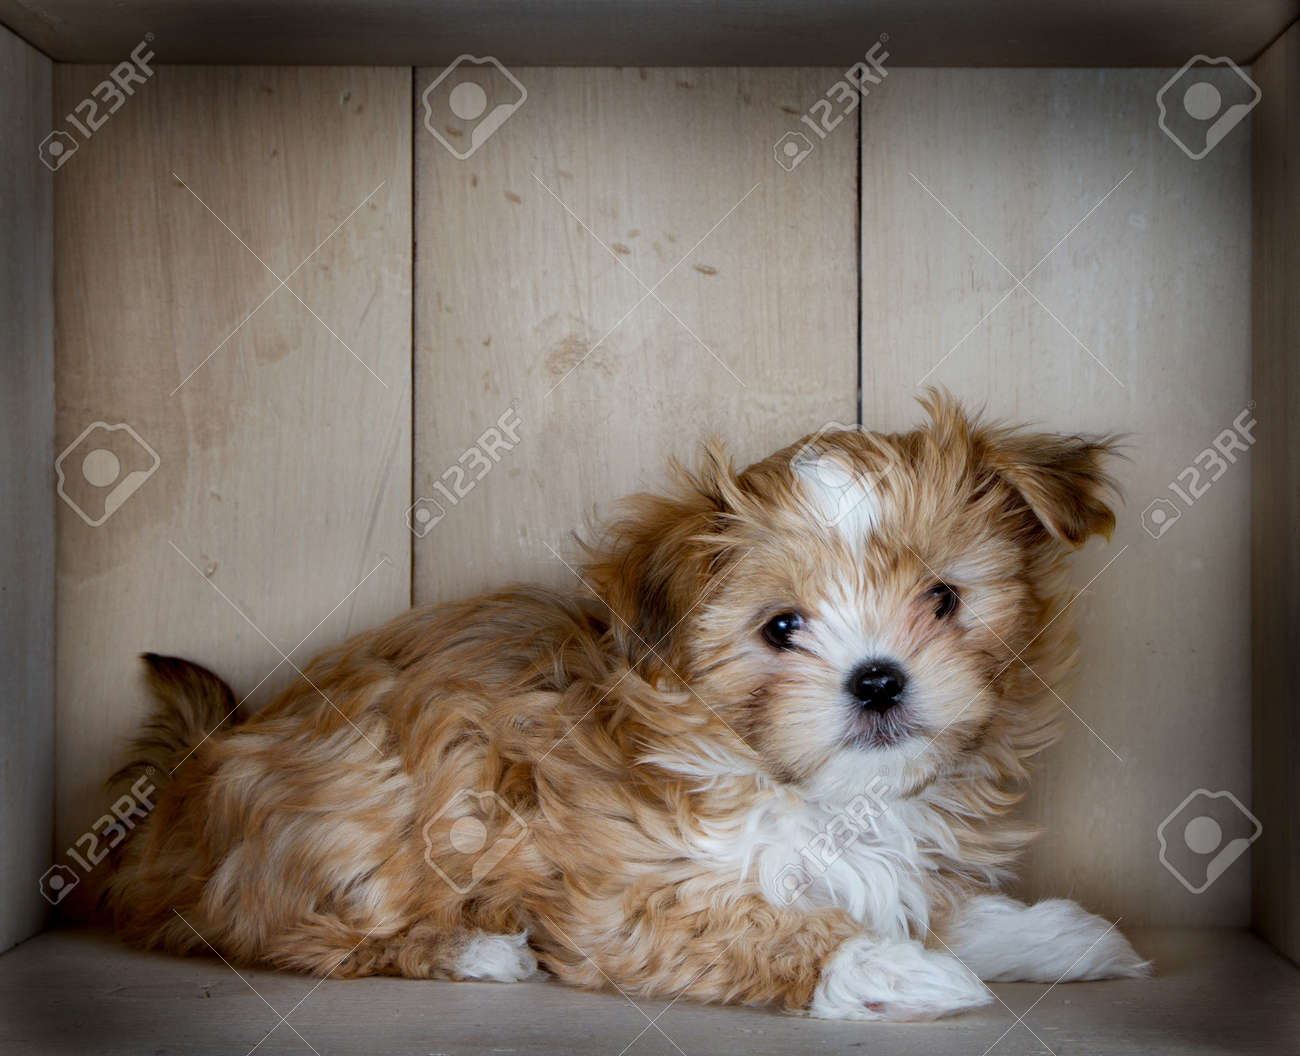 A Cute Small And Fluffy Brown And White Dog Laying Down In A Stock